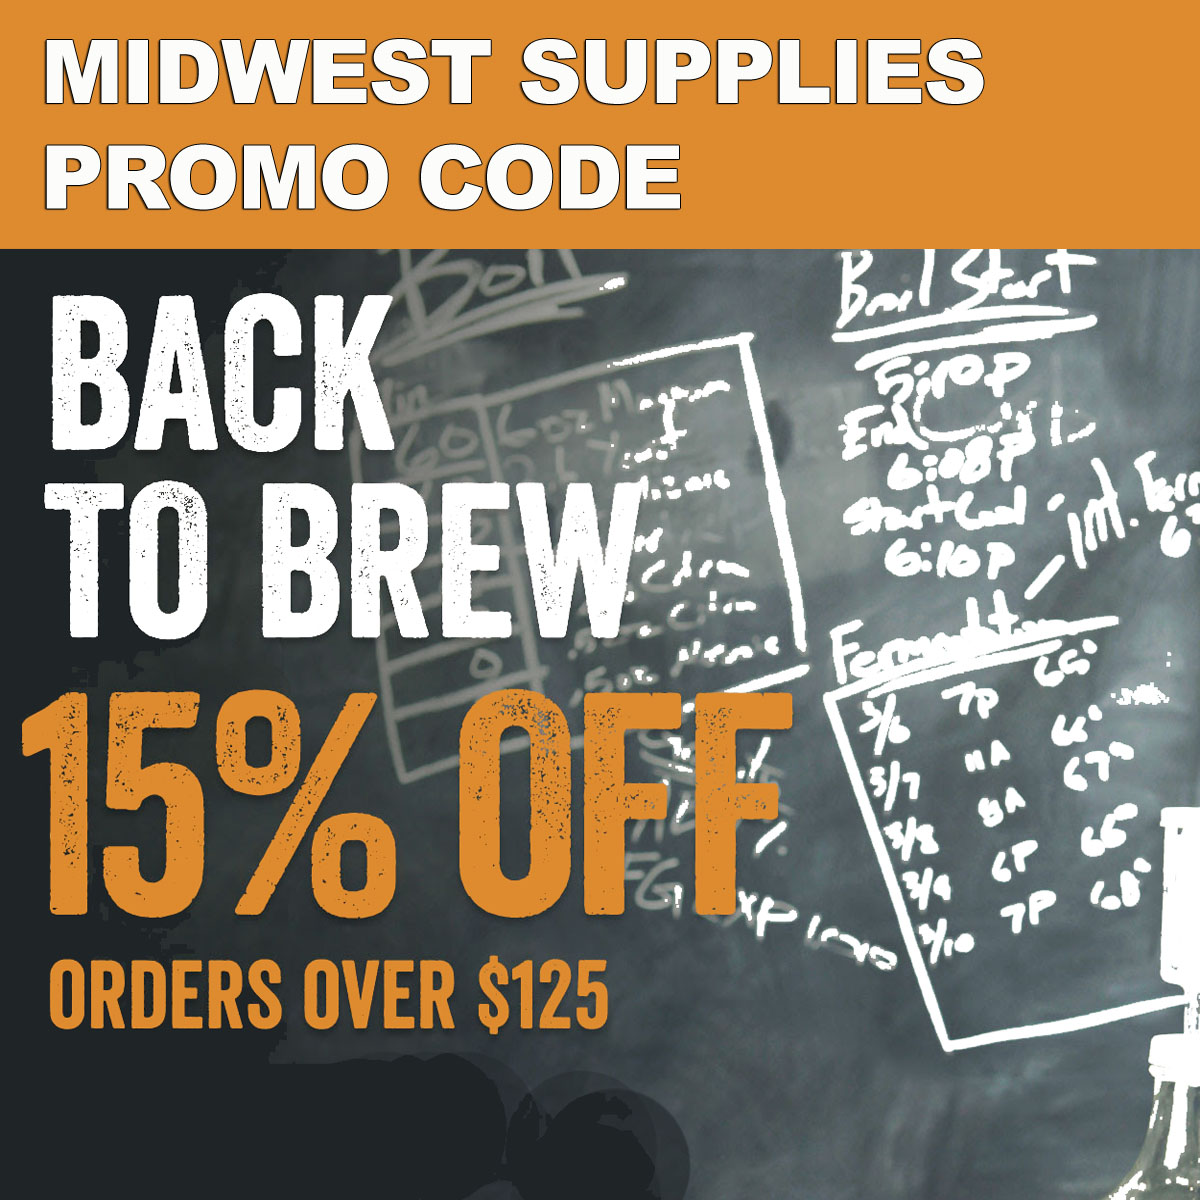 Midwest Supplies Save 15% On Orders Over $125 at Midwest Supplies with this MidwestSupplies.com Promo Code Coupon Code